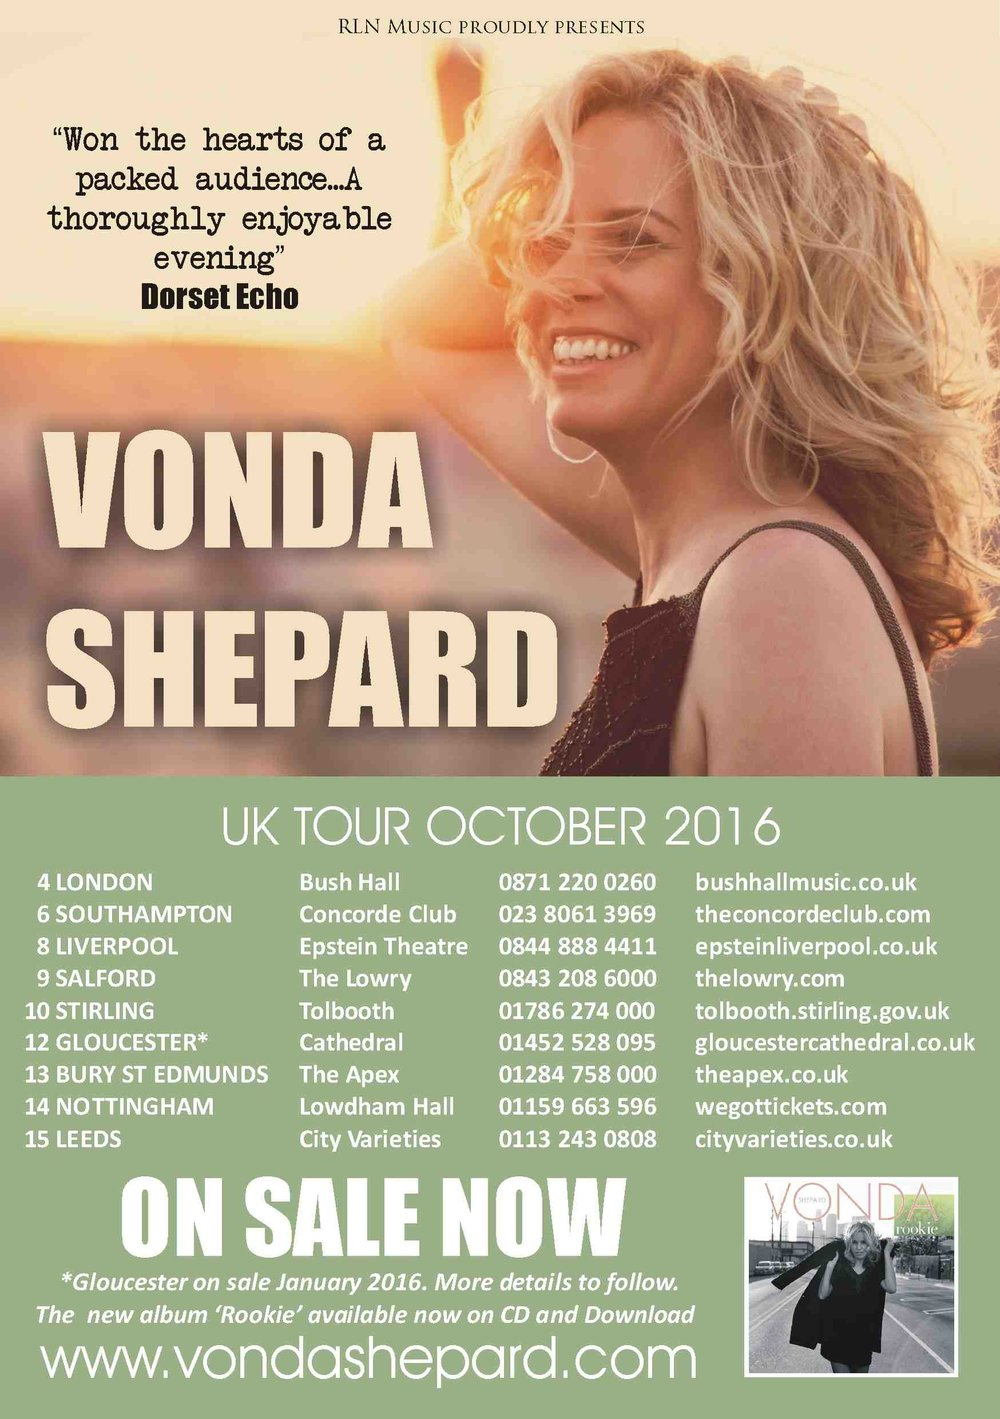 Make sure you catch Vonda Shepard on tour next month in the UK. Click on the picture for tickets.